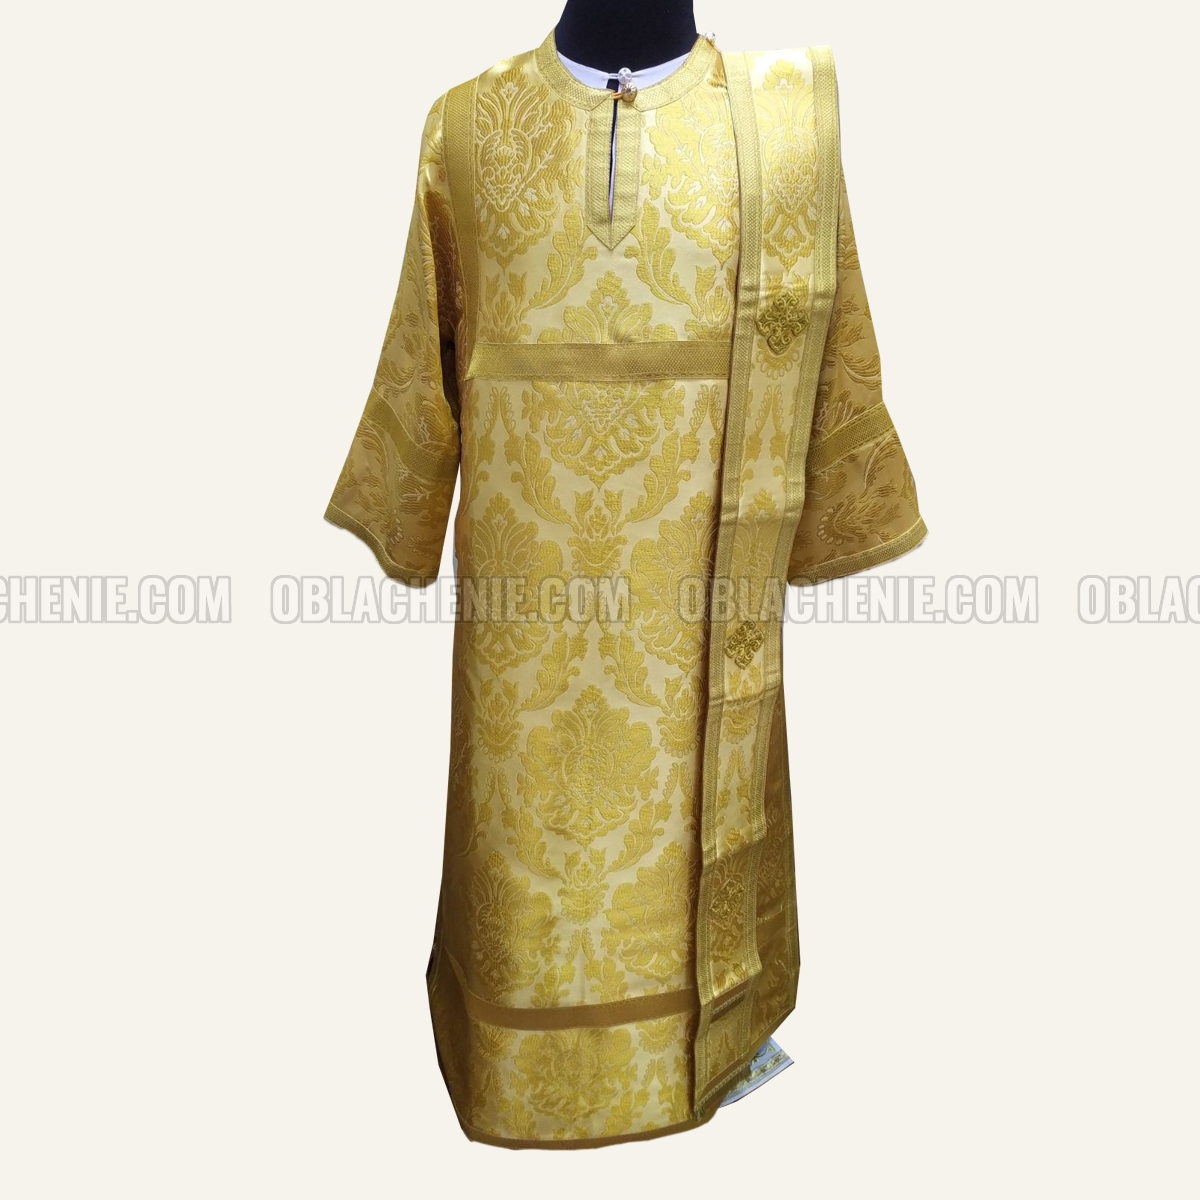 DEACON'S VESTMENTS 10920